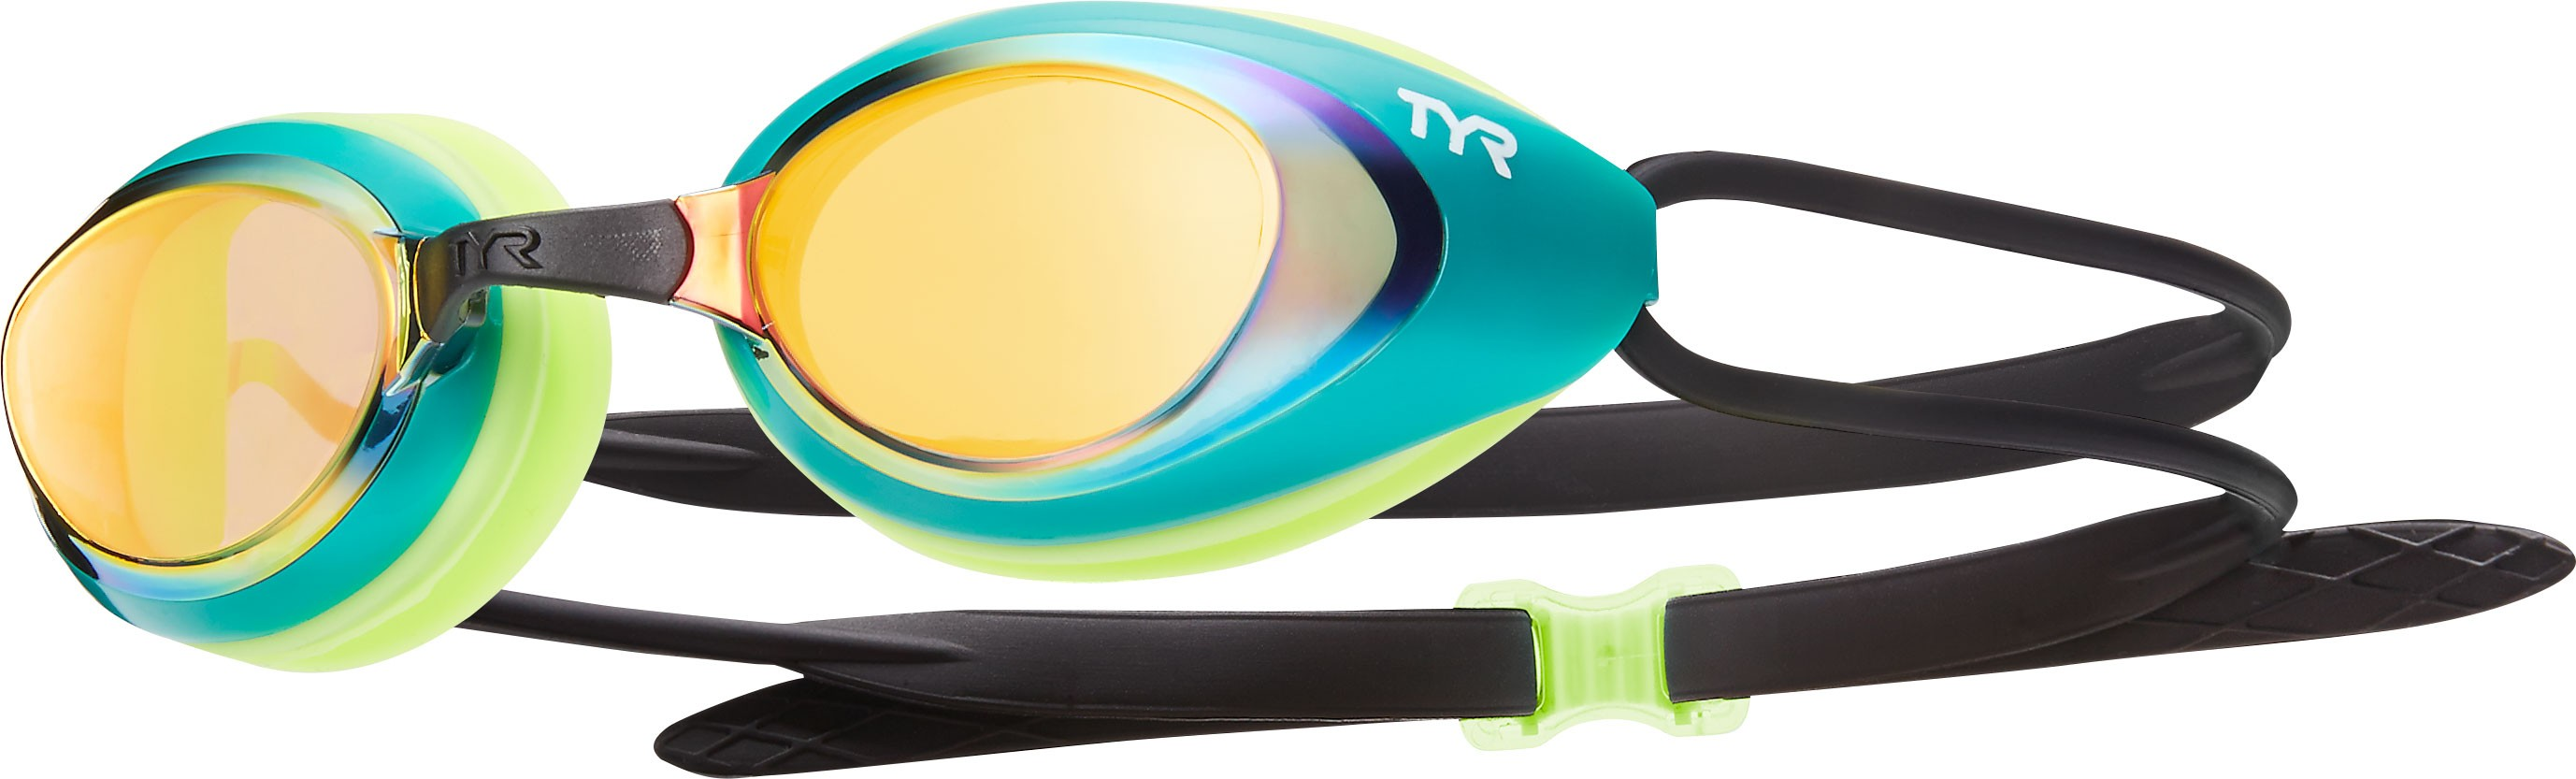 2755x833 Goggles Clipart Competitive Swimming